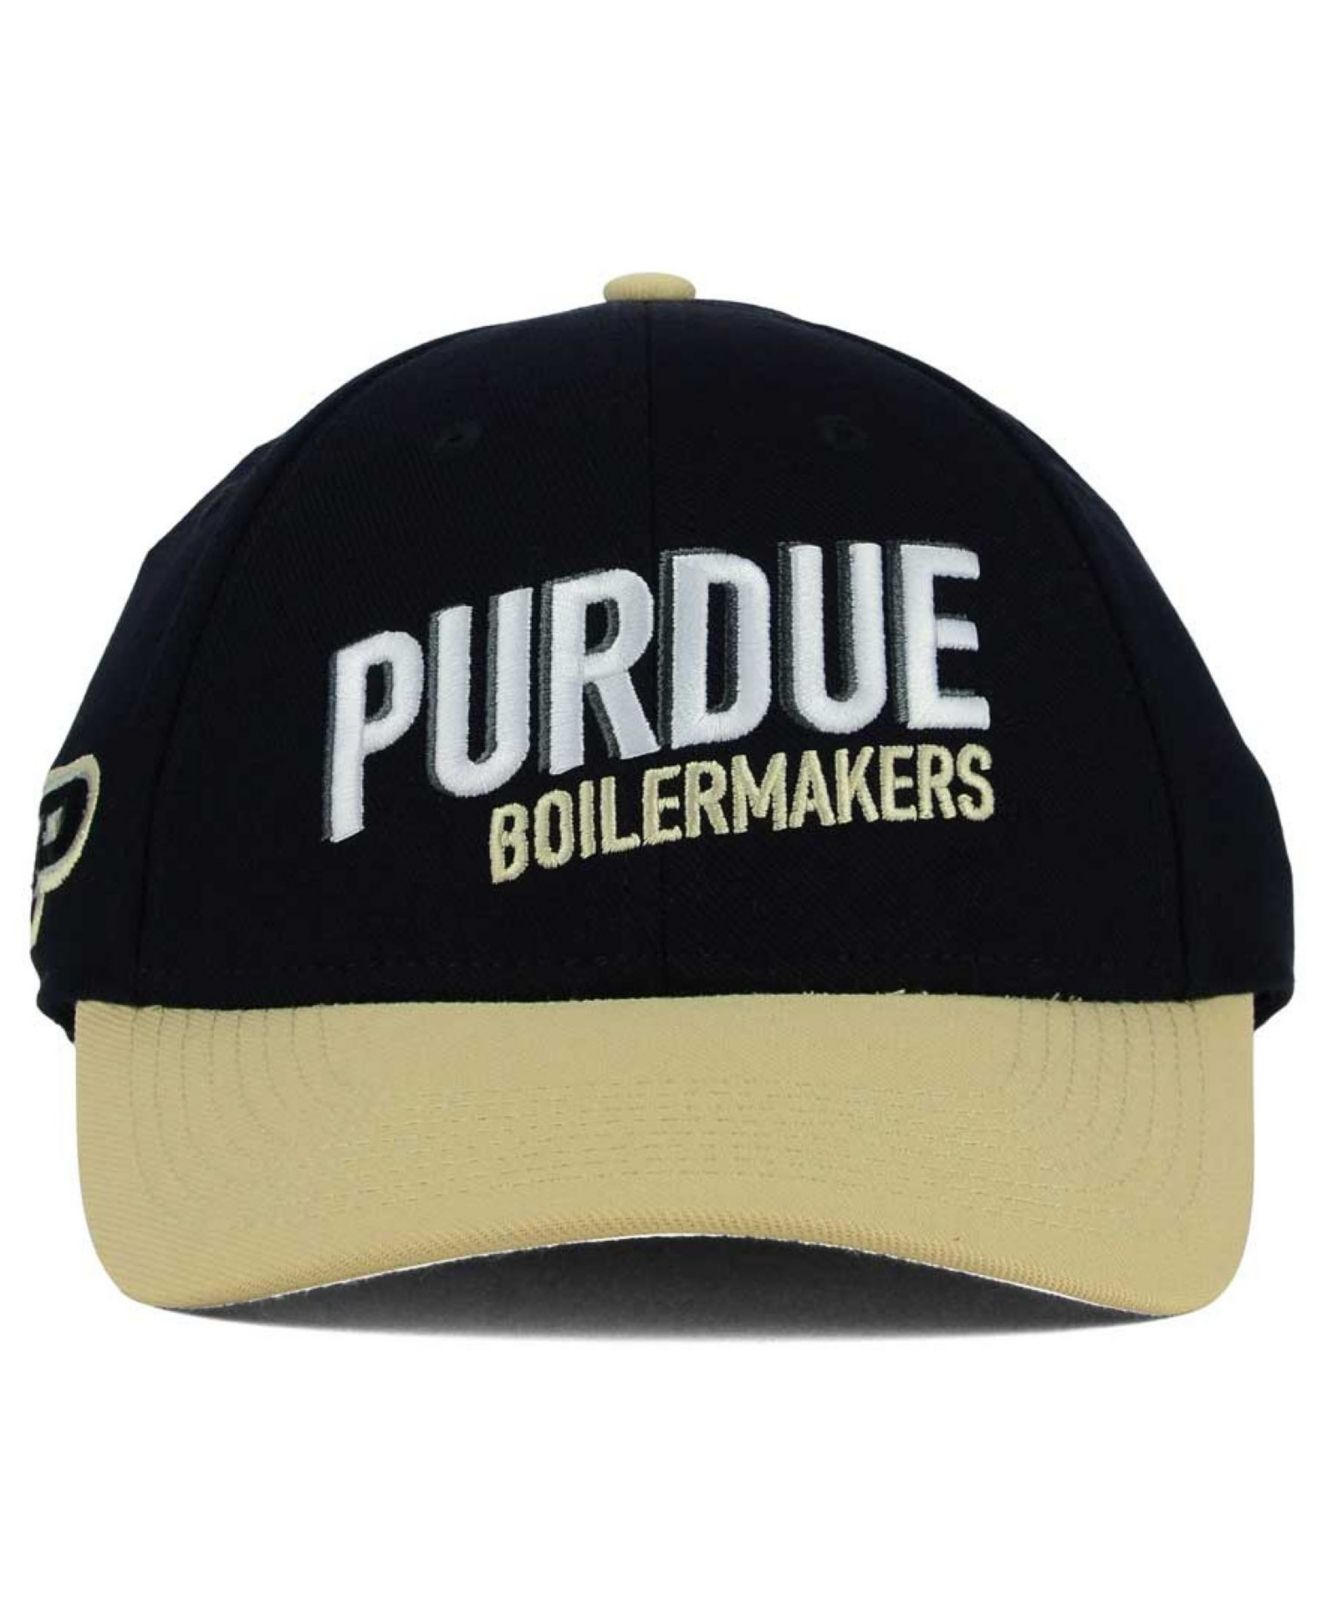 68111dfef32 Lyst - Nike Purdue Boilermakers L91 Swooshflex Cap in Gray for Men